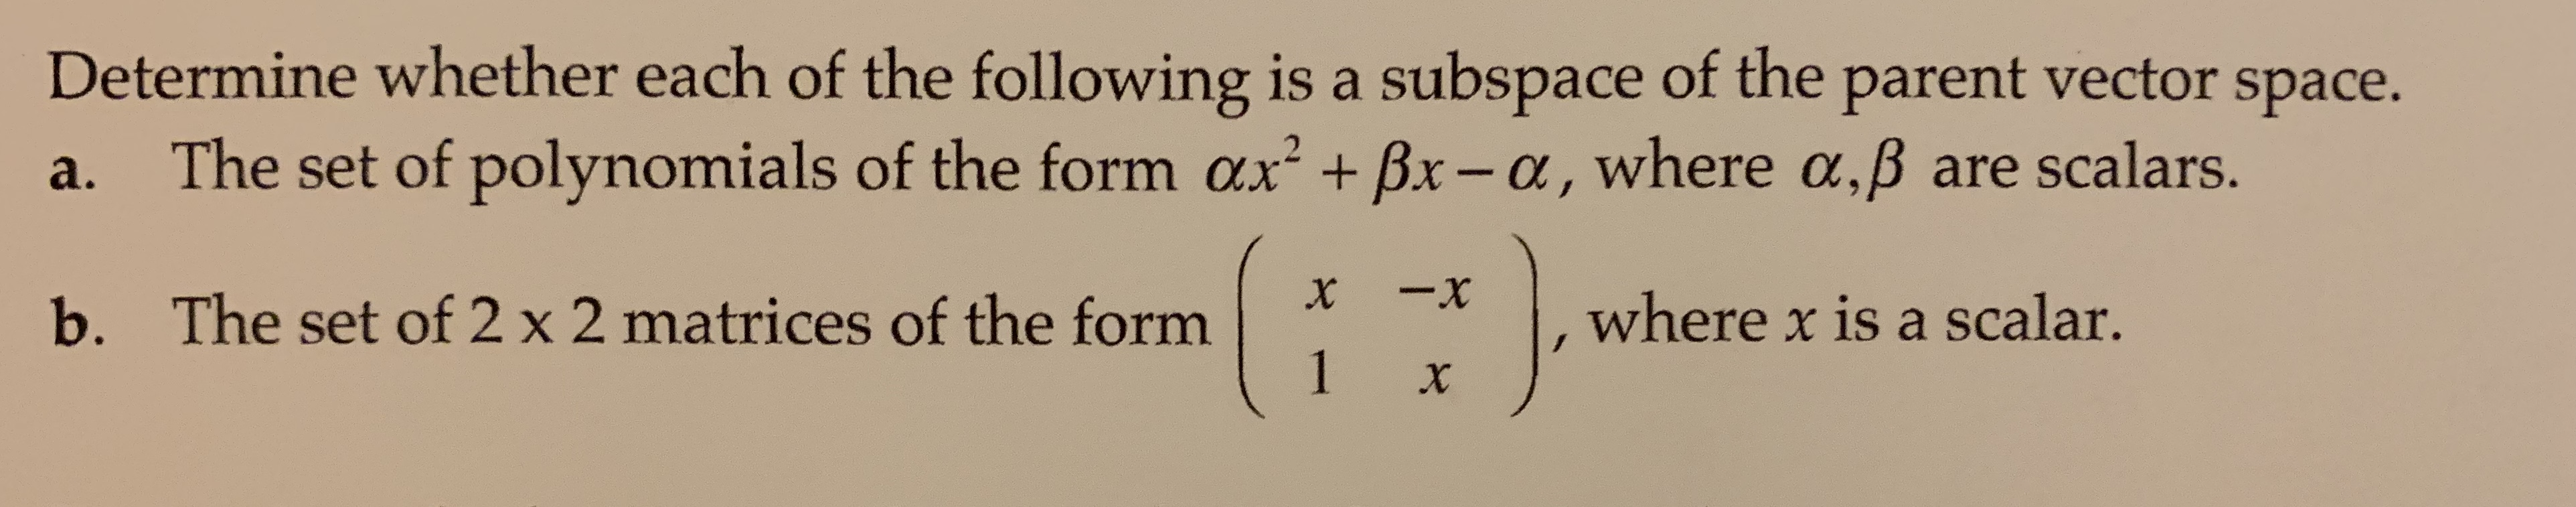 Determine whether each of the following is a subspace of the parent vector space. The set of polynomials of the form ax + Bx-a, where a,B are scalars. 2 а. -x X The set of 2 x 2 matrices of the form 1 where x is a scalar. b. X